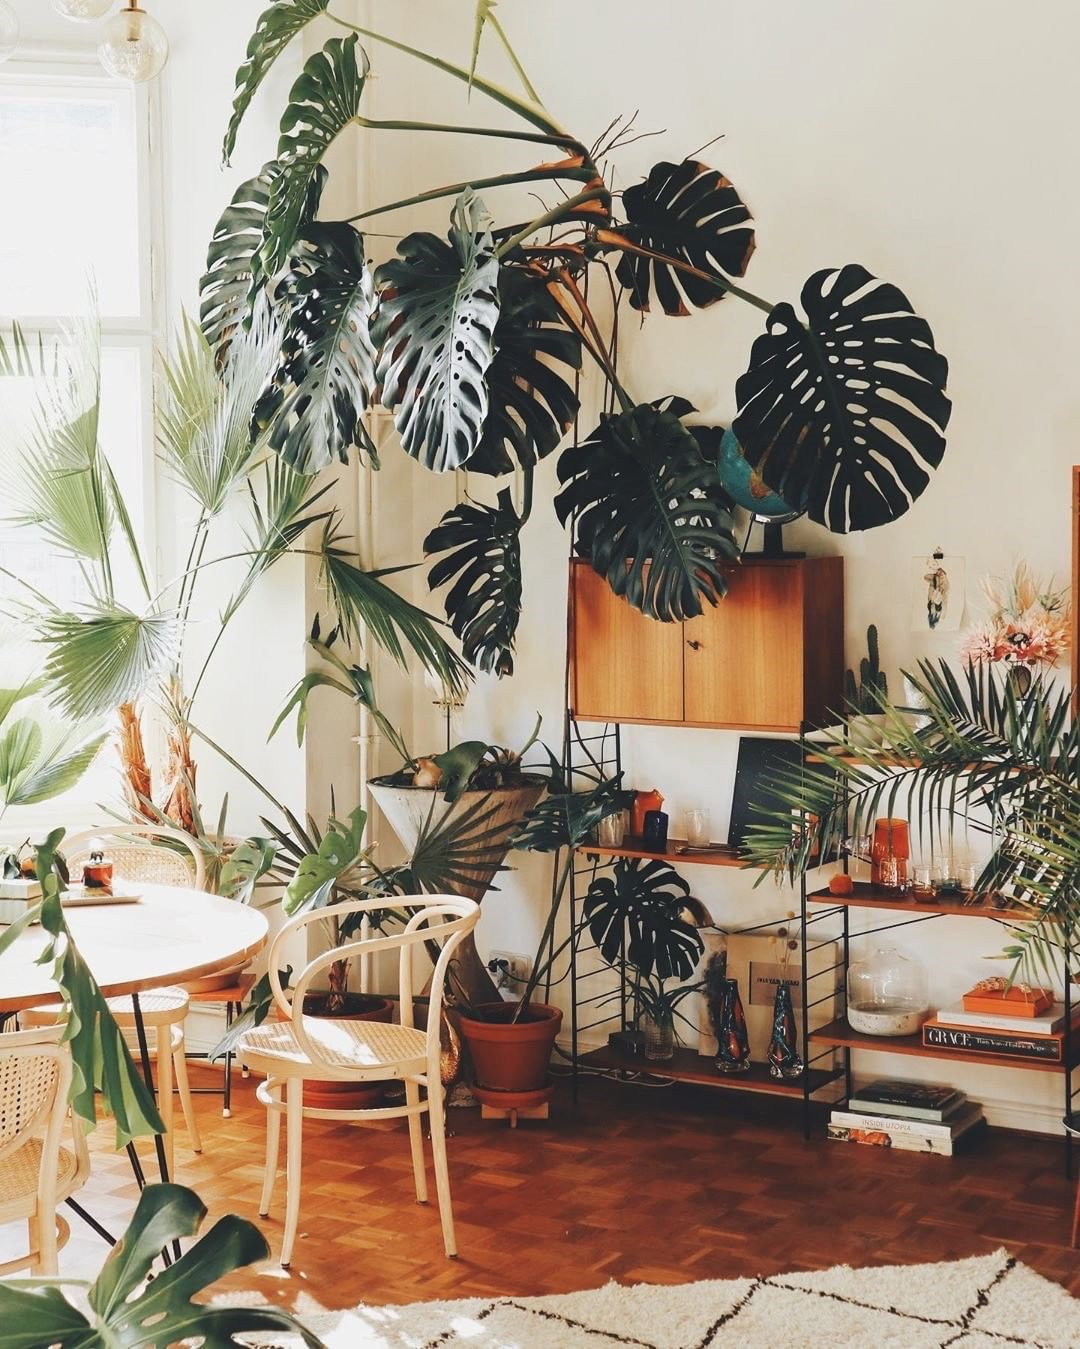 60 Indoor Plants Decor And Plants Shelves Ideas To Brighten Up Your Room Flymeso Blog